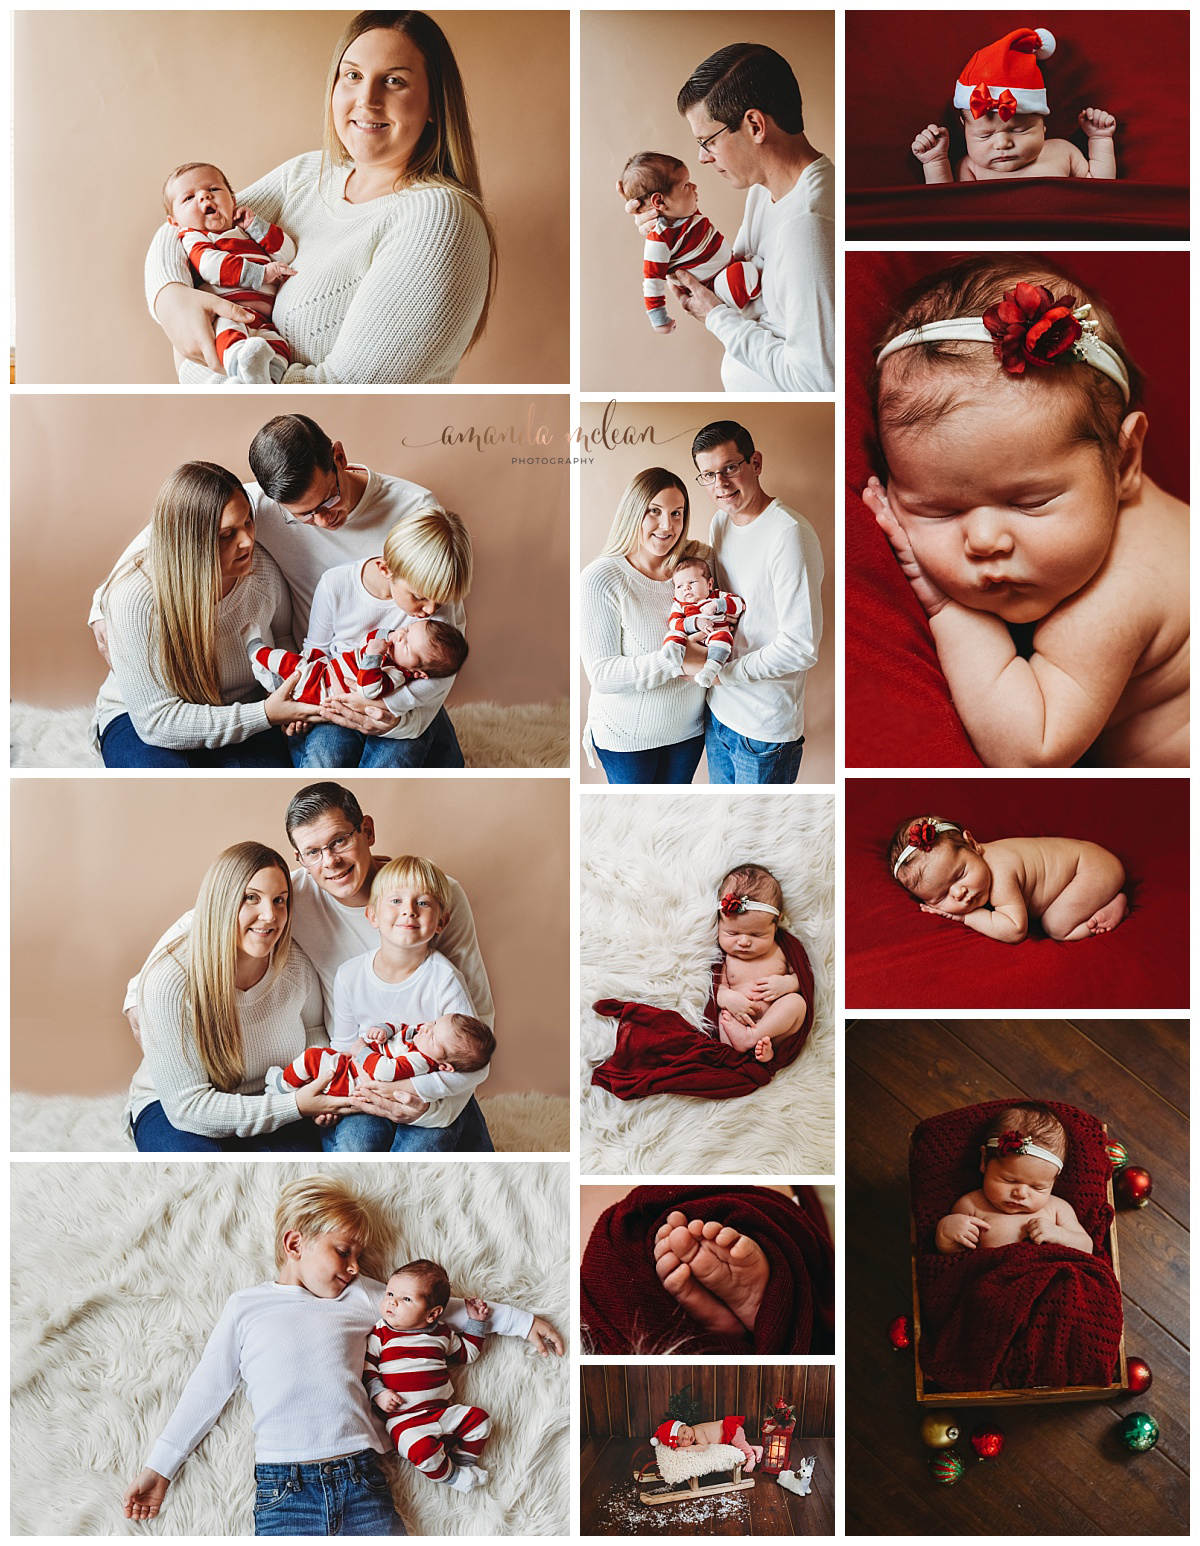 Keepsake $325 - 2 hour session15 images of your choice (color and black and white)At your home or my studiocombination of bean bag and prop imagesFamily photos and detailed shots of babies features1 facebook collage cover1 8x10, 3 5x 7s OR 1 8x 10 and 5 4x6's